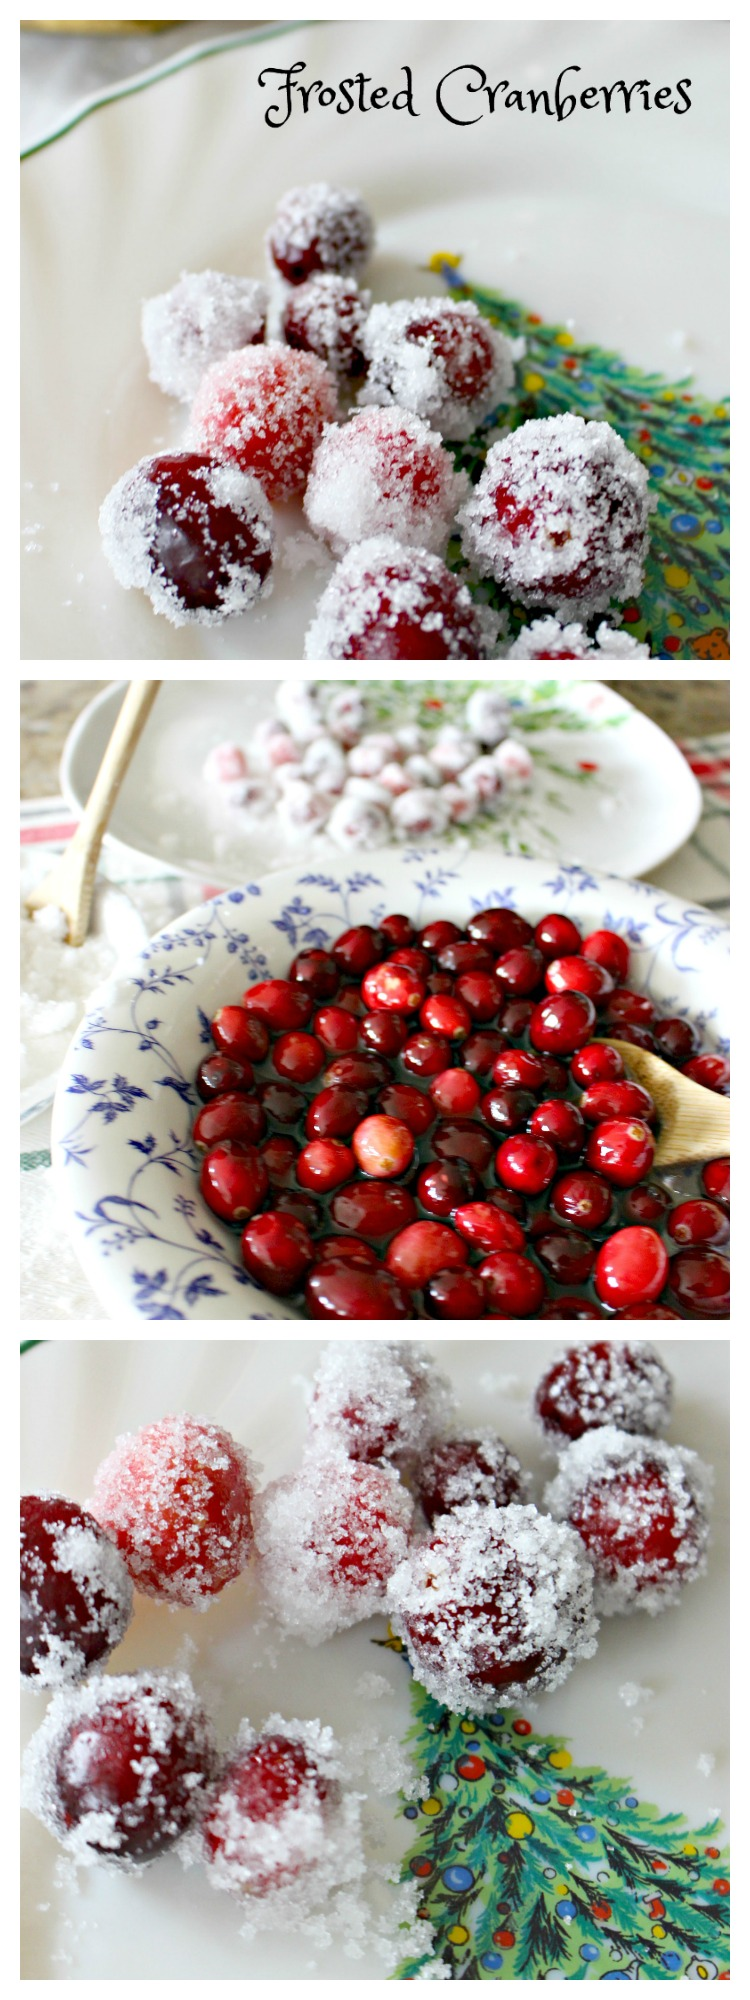 How to Sugar Cranberries to Make Frosted Cranberries for a Christmas Treat #ChristmasDinner